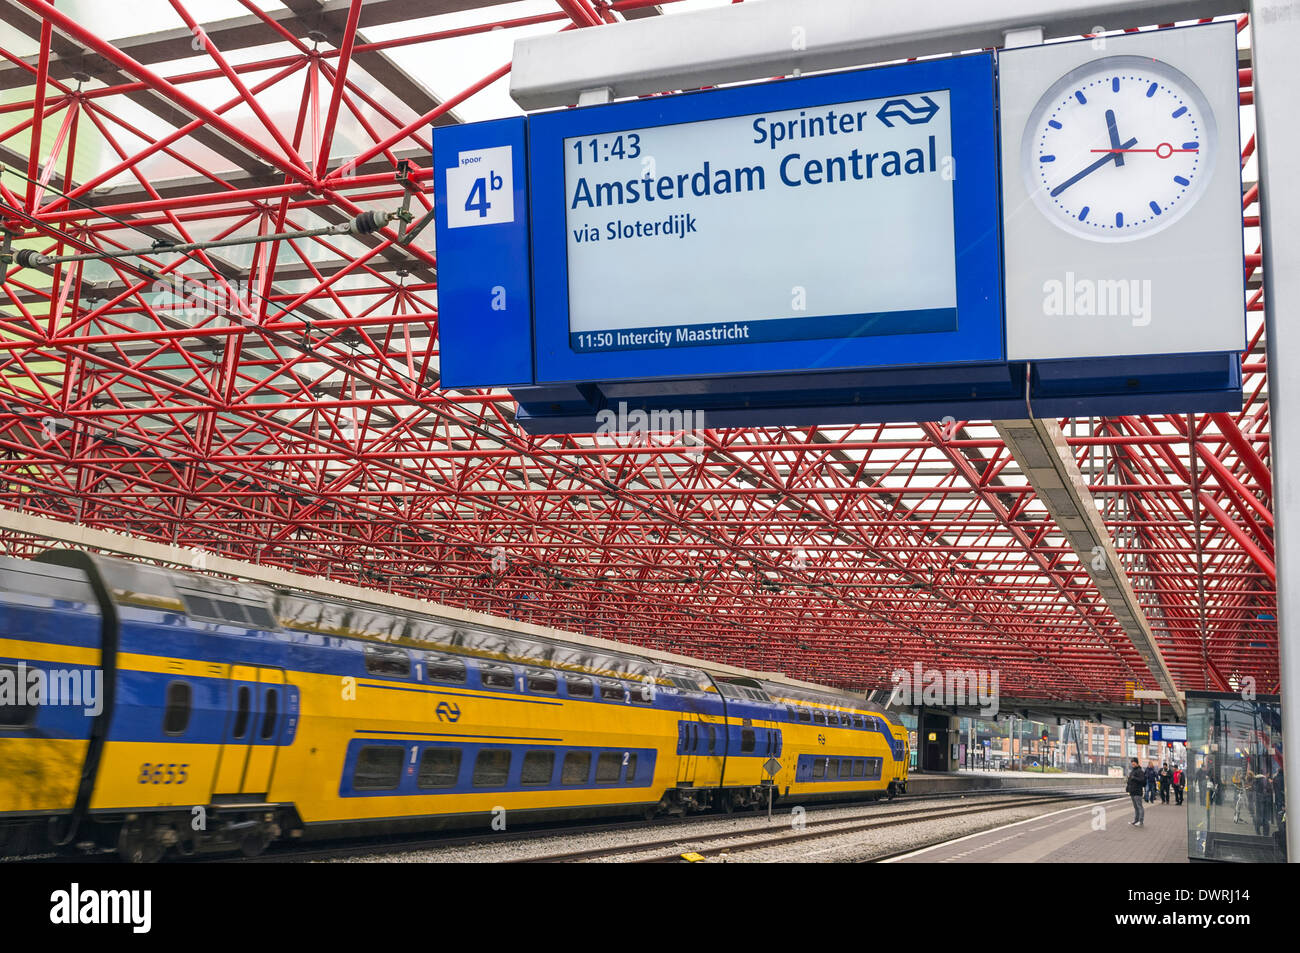 Railway station at Zandaam, near Amsterdam Centraal, Netherlands with a train passing through - Stock Image